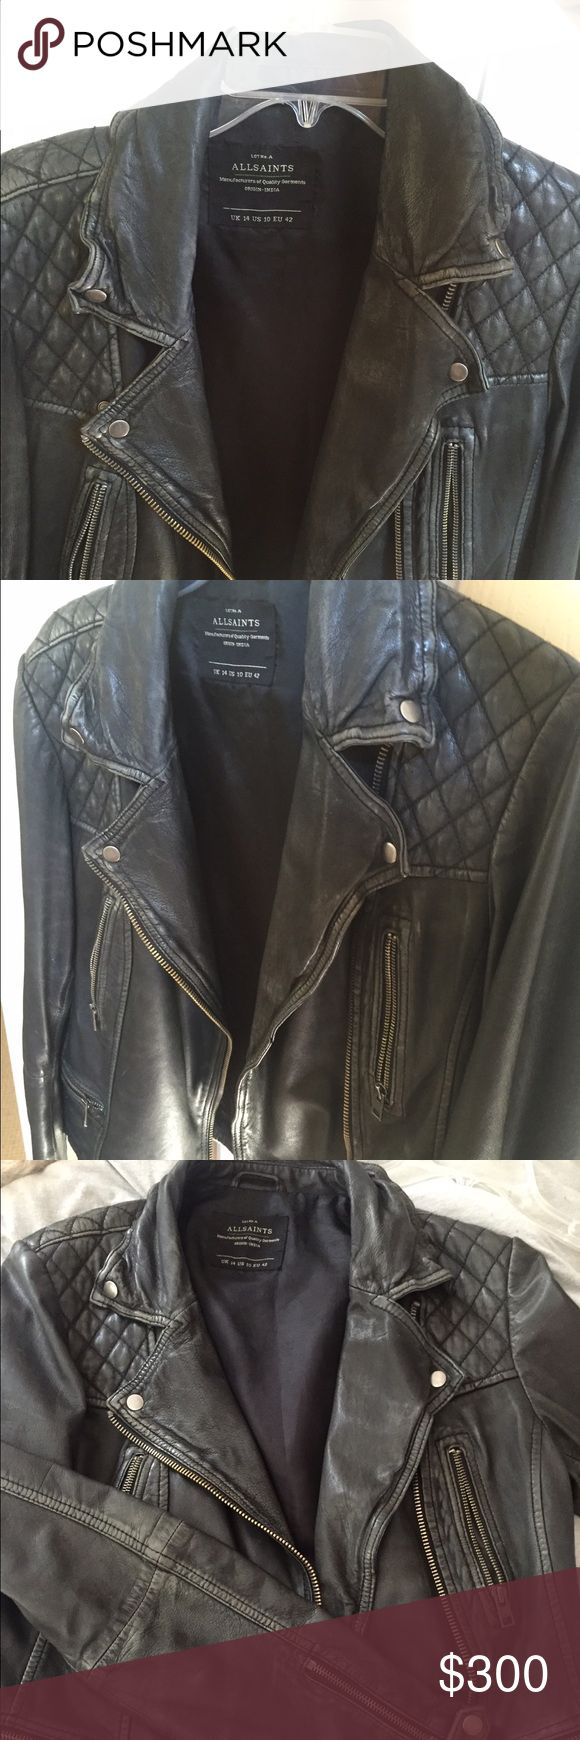 Women's Cargo AllSaints Jacket (Size 10) Ive had my AllSaints jacket for two years, haven't worn it as much as I thought I would. It doesn't fit me right anymore, which is why I am selling it. Still in good condition, all of the zippers and buttons work. Has some natural wear in the leather, but no rips/tears. All in all its a great jacket and one of the best I will have ever owned. Allsaints Jackets & Coats